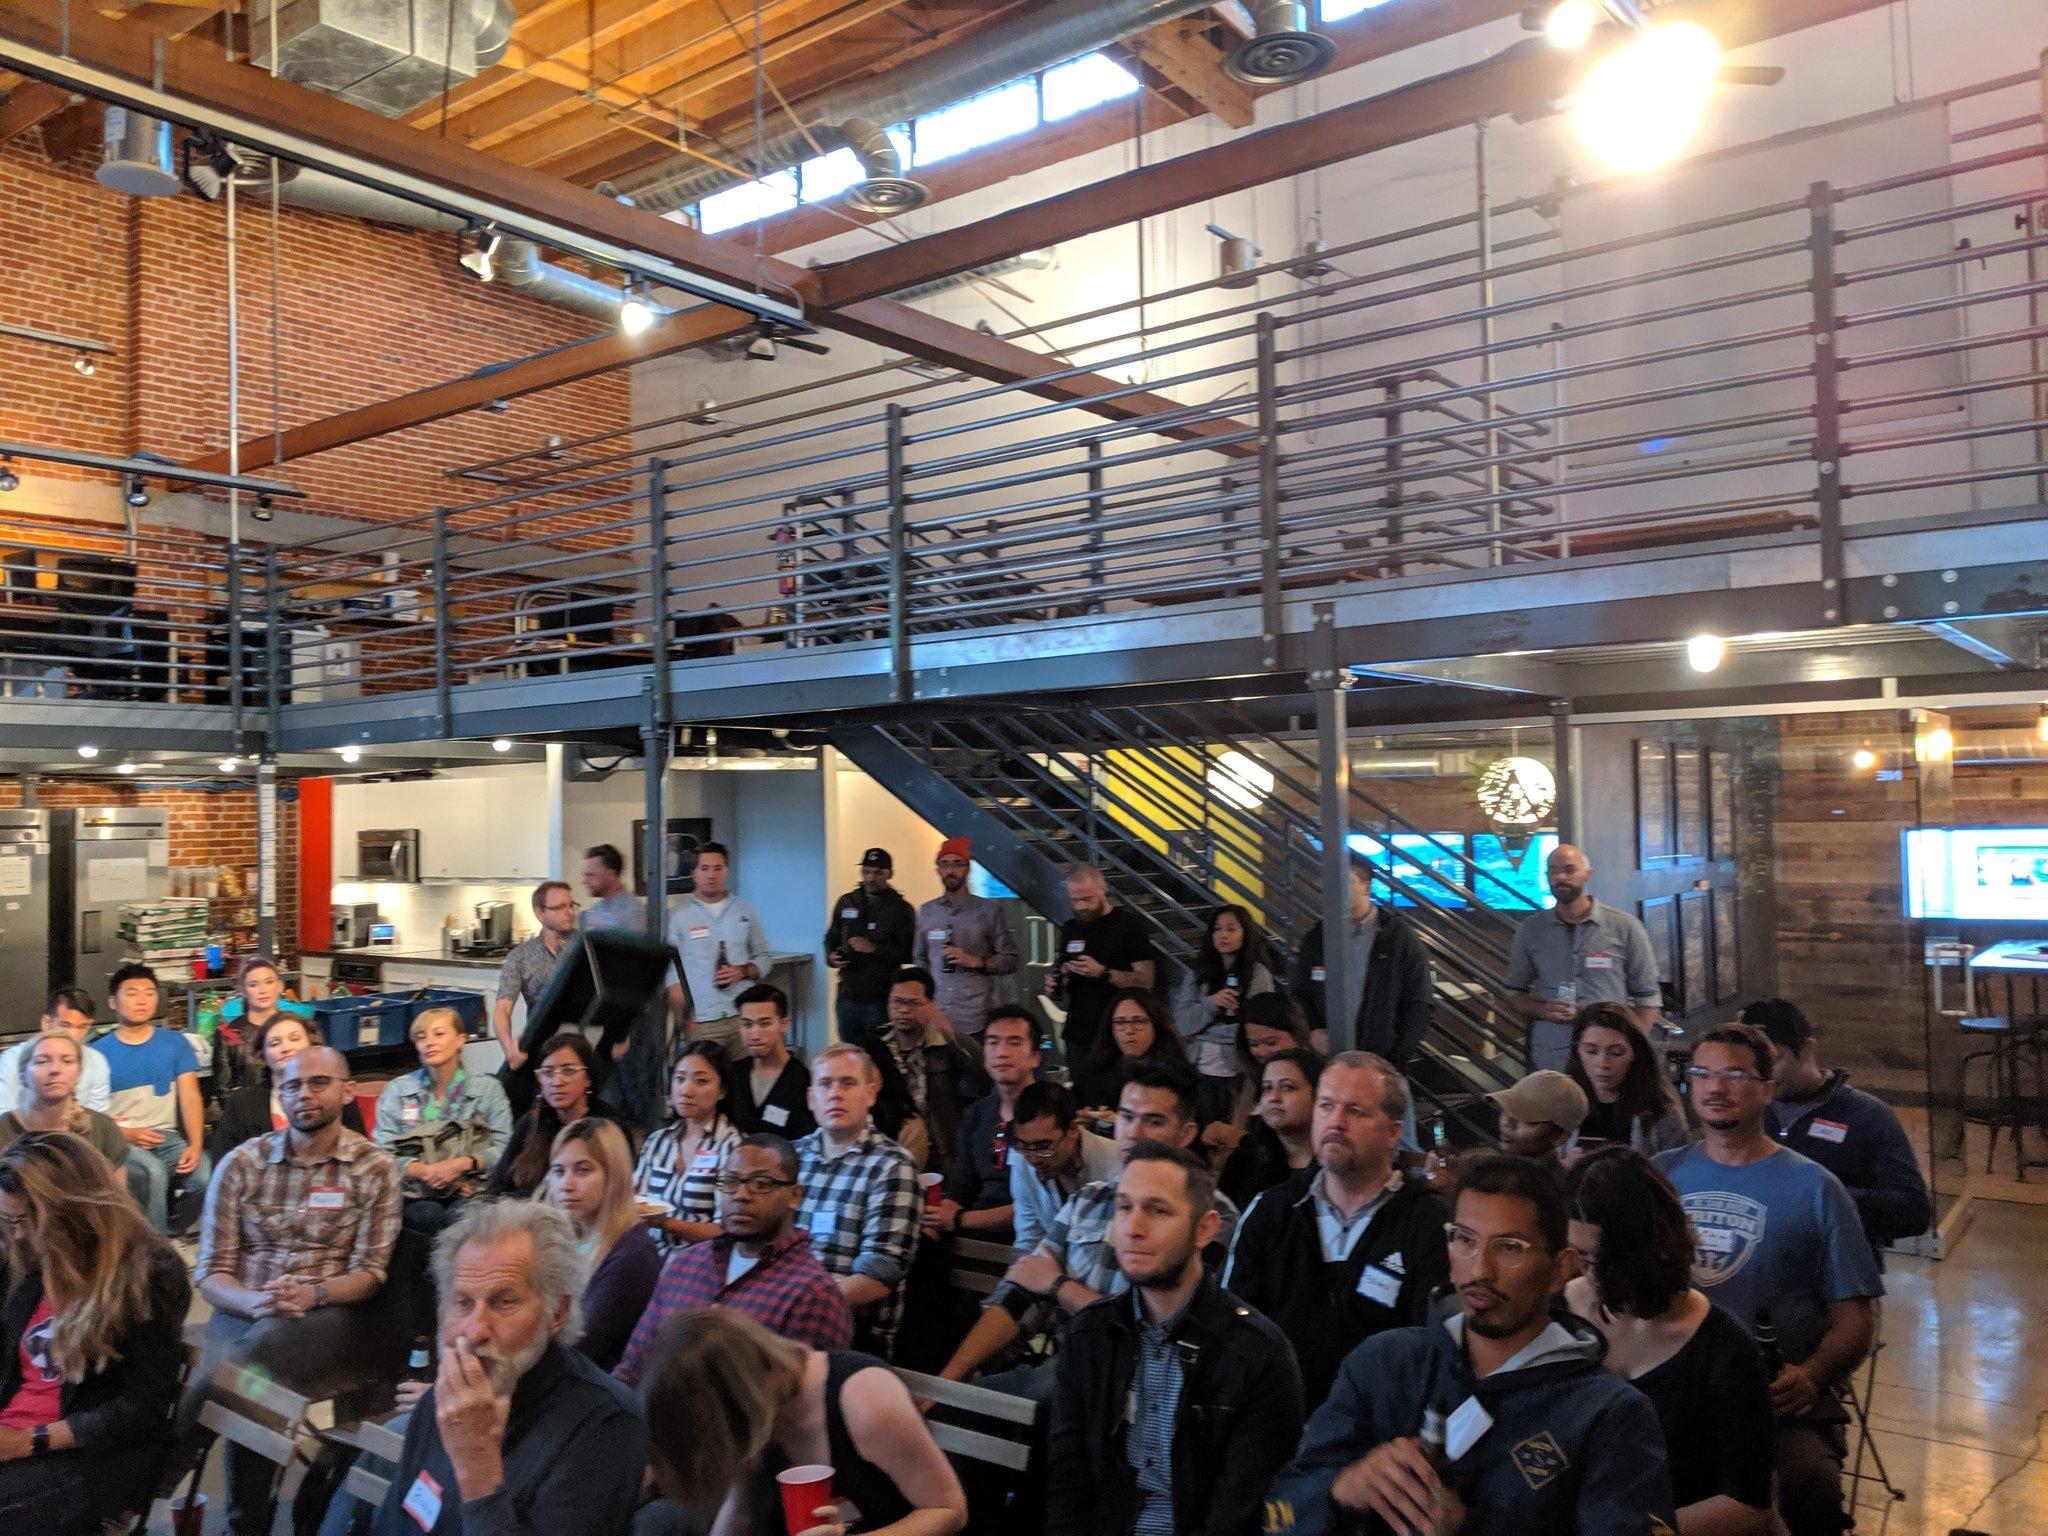 A crowd of designers, researchers, and engineers are seated in rows at Blink's San Diego studio for the event.